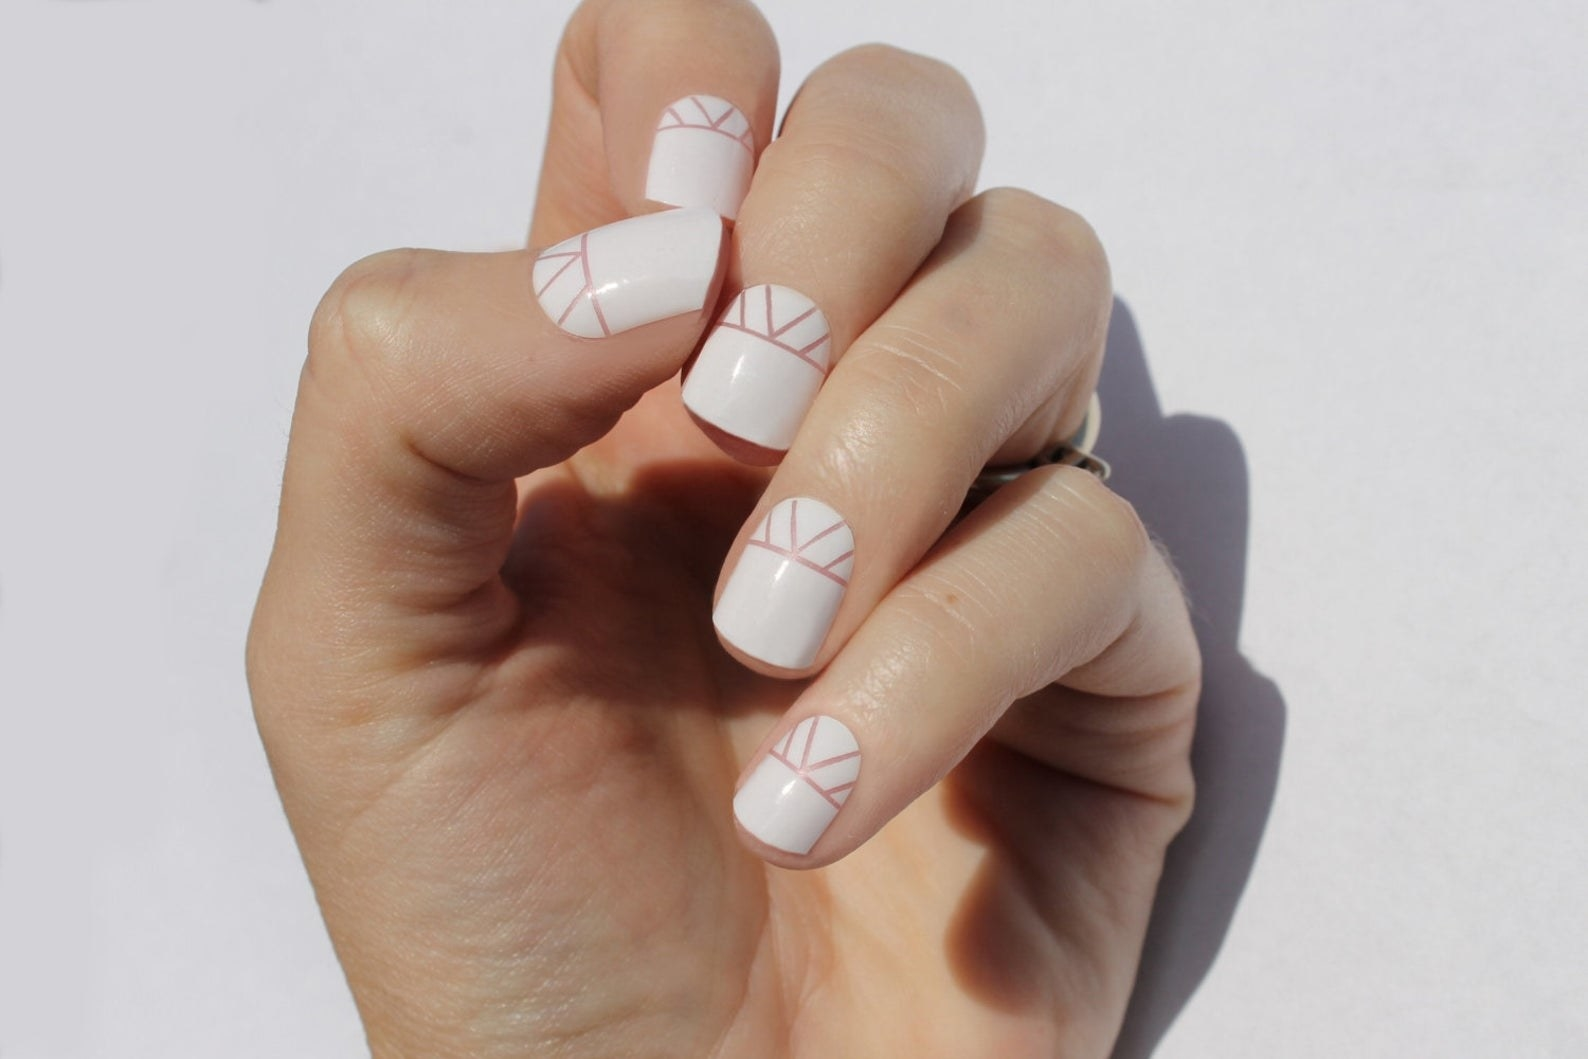 Model with white patterned nail wraps